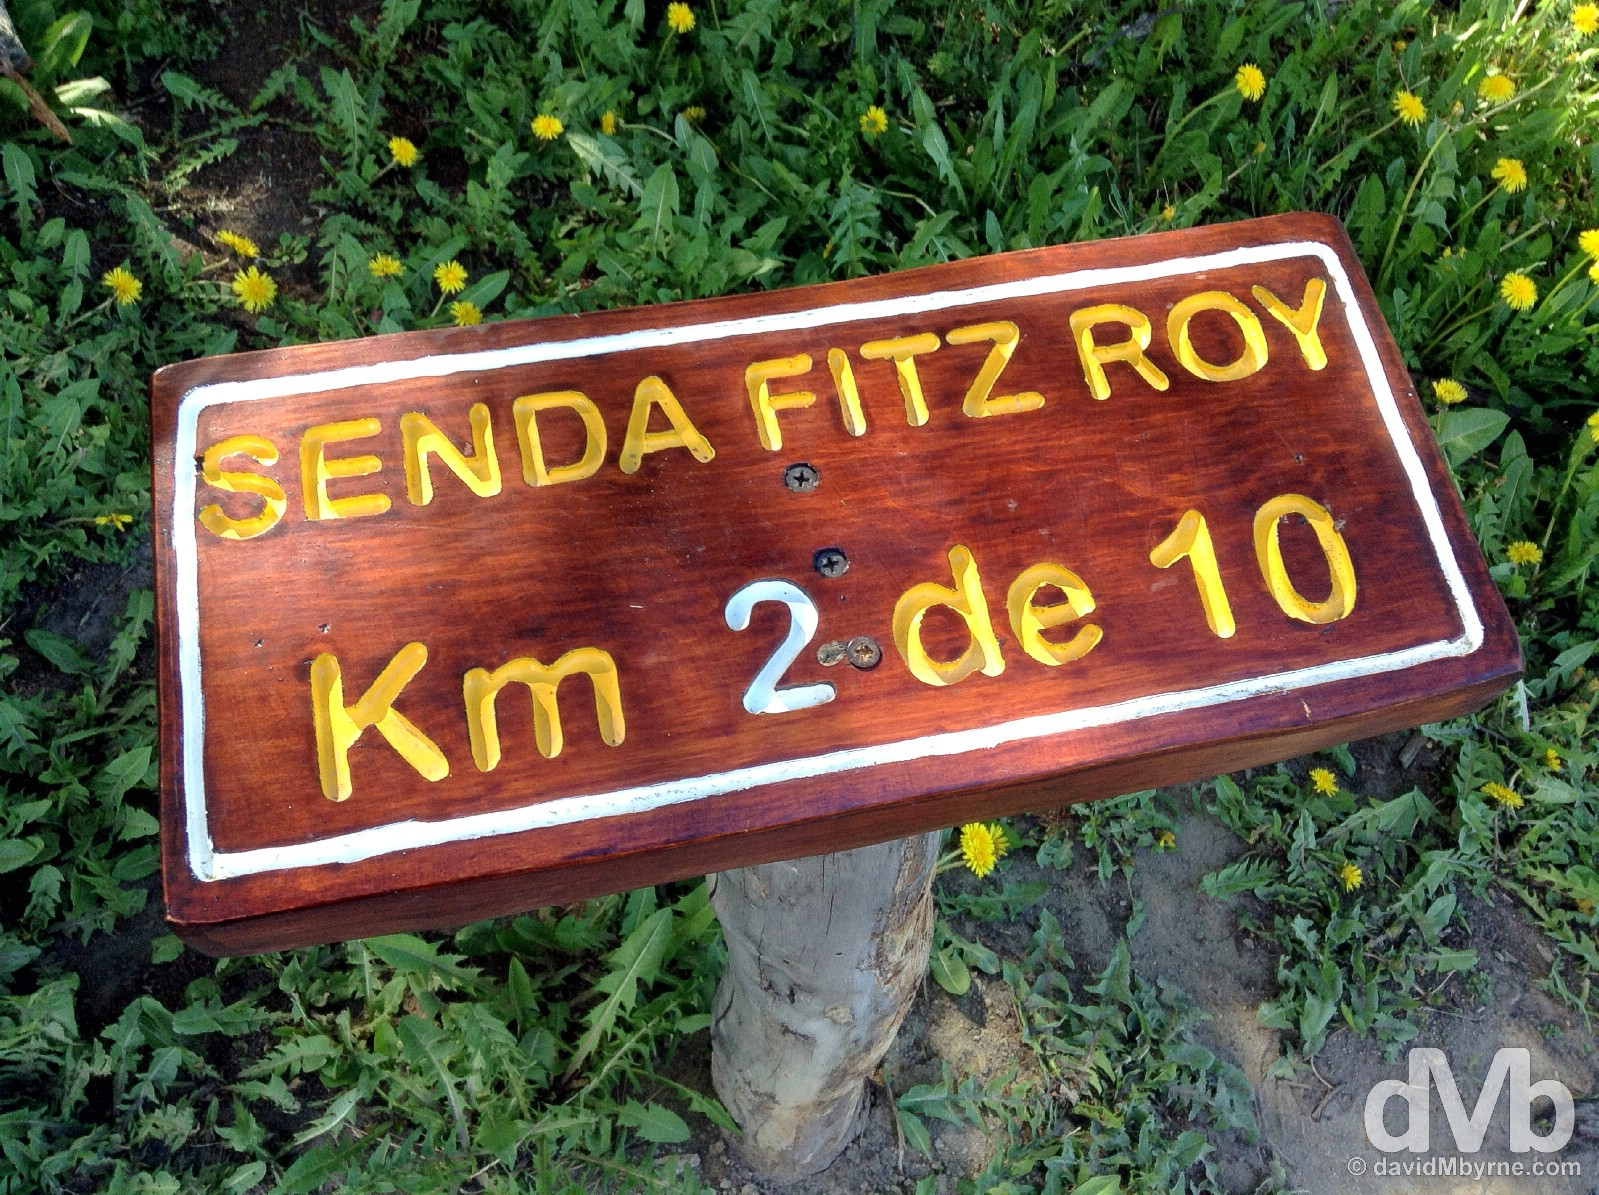 Kilometre markers on the Senda Fitz Roy (Fitz Roy Track) in the Fitz Roy sector of Parque Nacional Los Glaciares, southern Patagonia, Argentina. November 4, 2015.